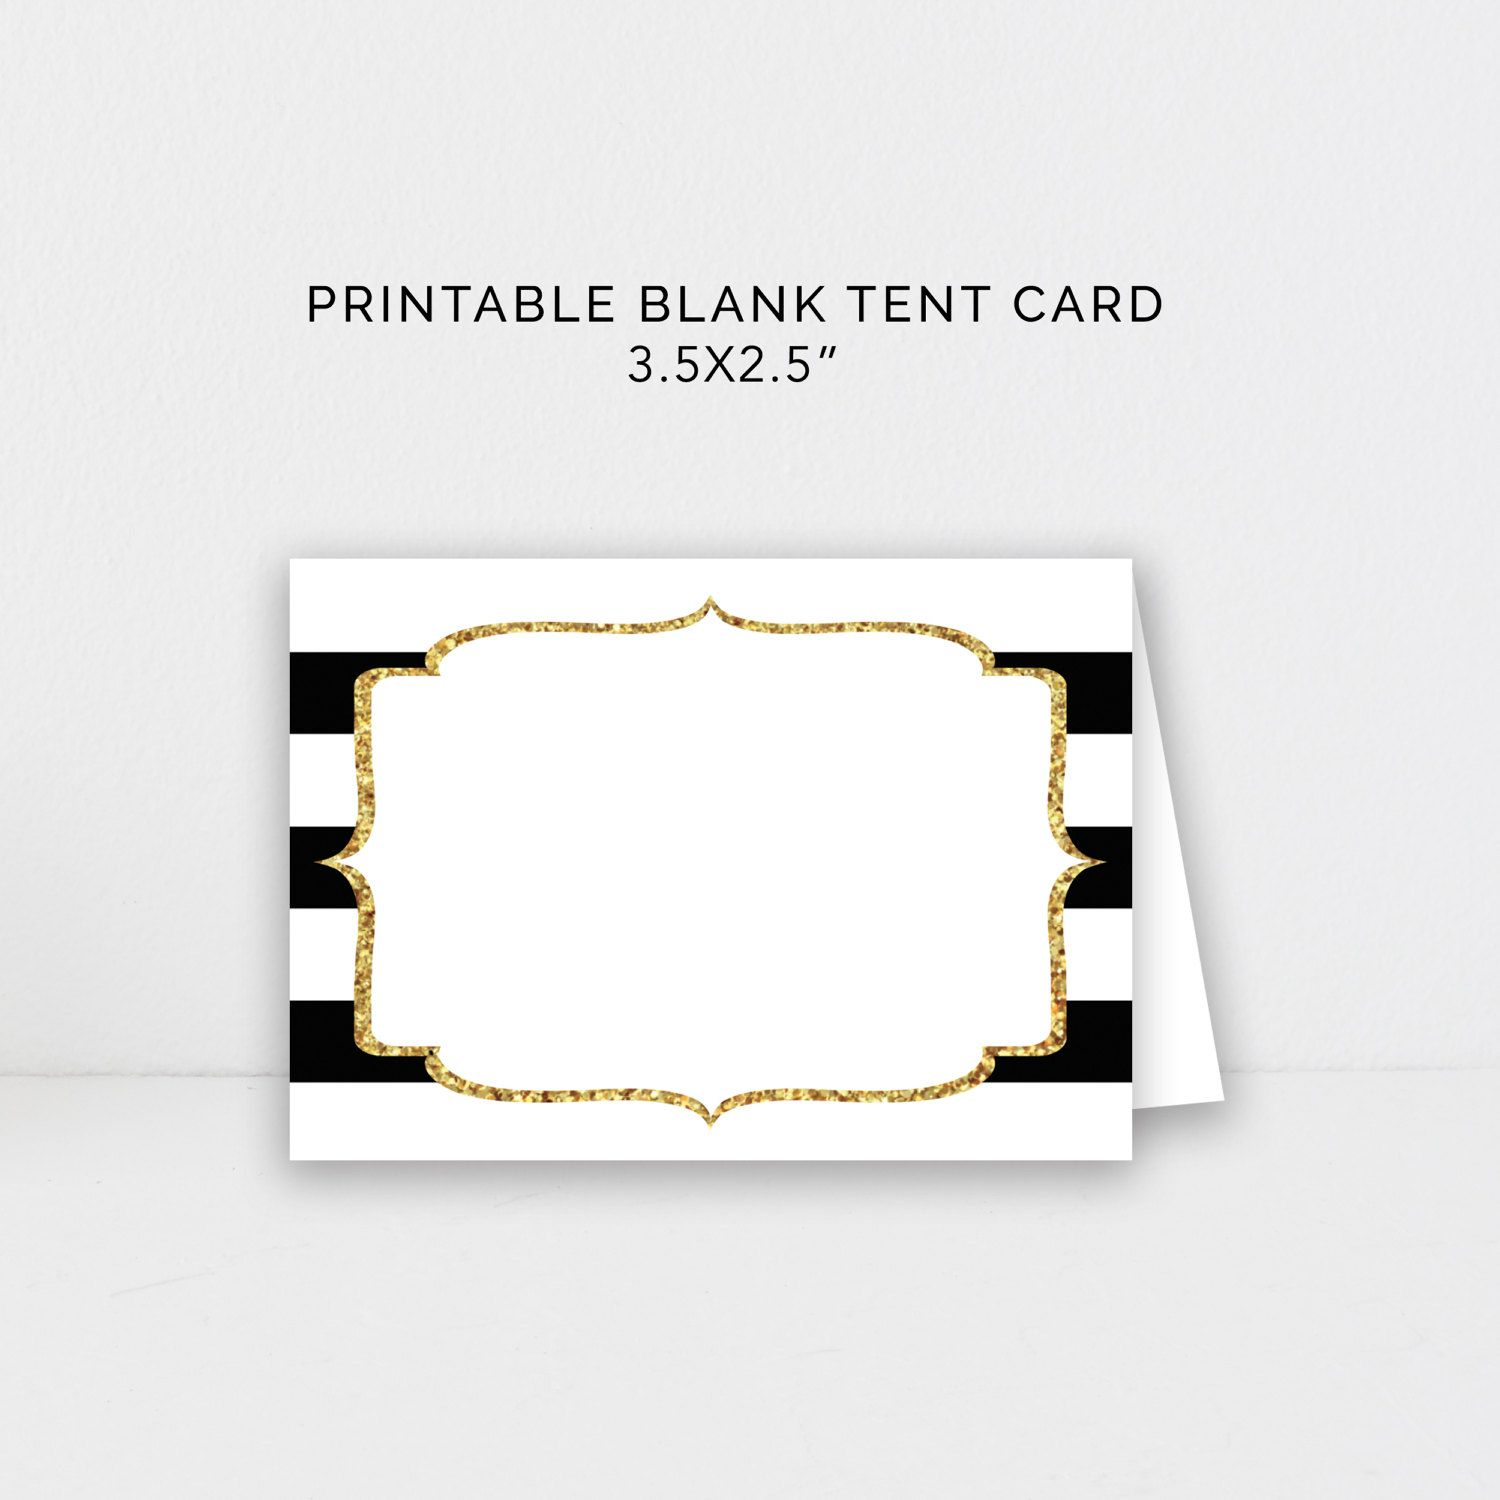 Kate Spade Black and Gold Party Food Tent Template & Kate Spade Black and Gold Party Food Tent Template | Kate Spade ...